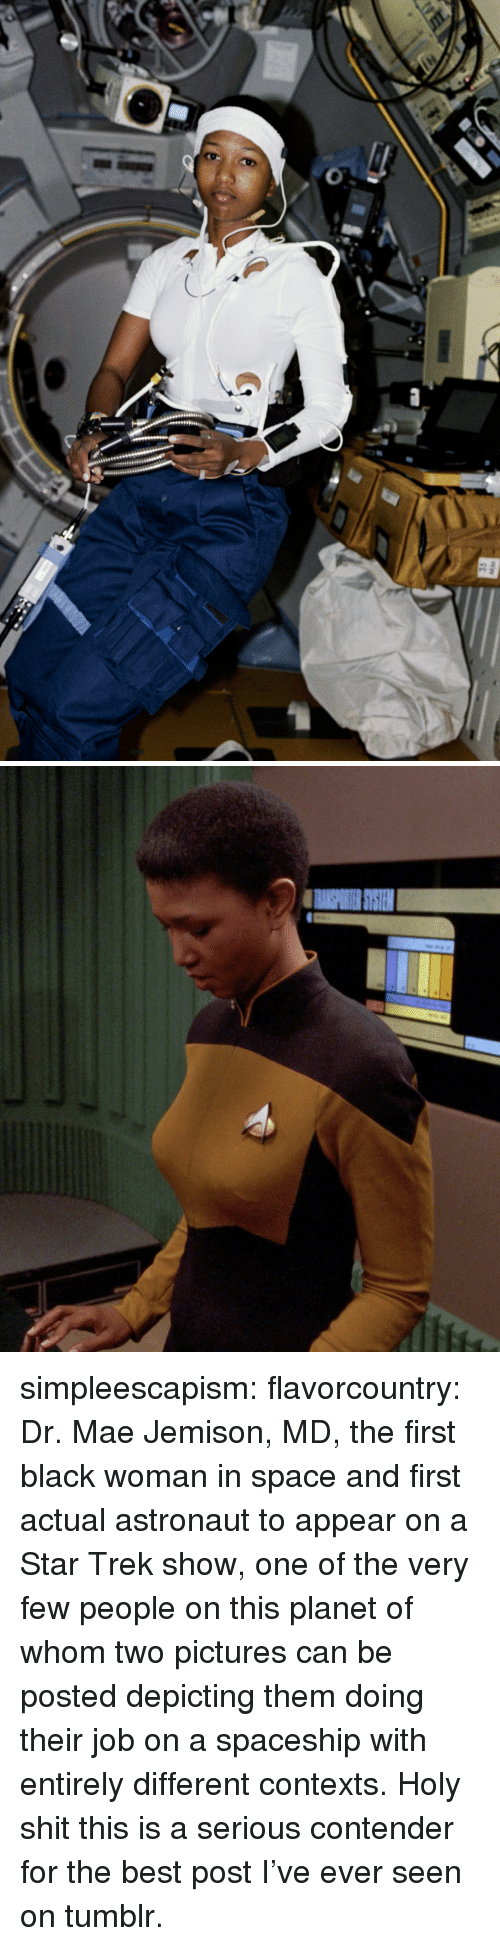 spaceship: simpleescapism:  flavorcountry: Dr. Mae Jemison, MD, the first black woman in space and first actual astronaut to appear on a Star Trek show, one of the very few people on this planet of whom two pictures can be posted depicting them doing their job on a spaceship with entirely different contexts. Holy shit this is a serious contender for the best post I've ever seen on tumblr.